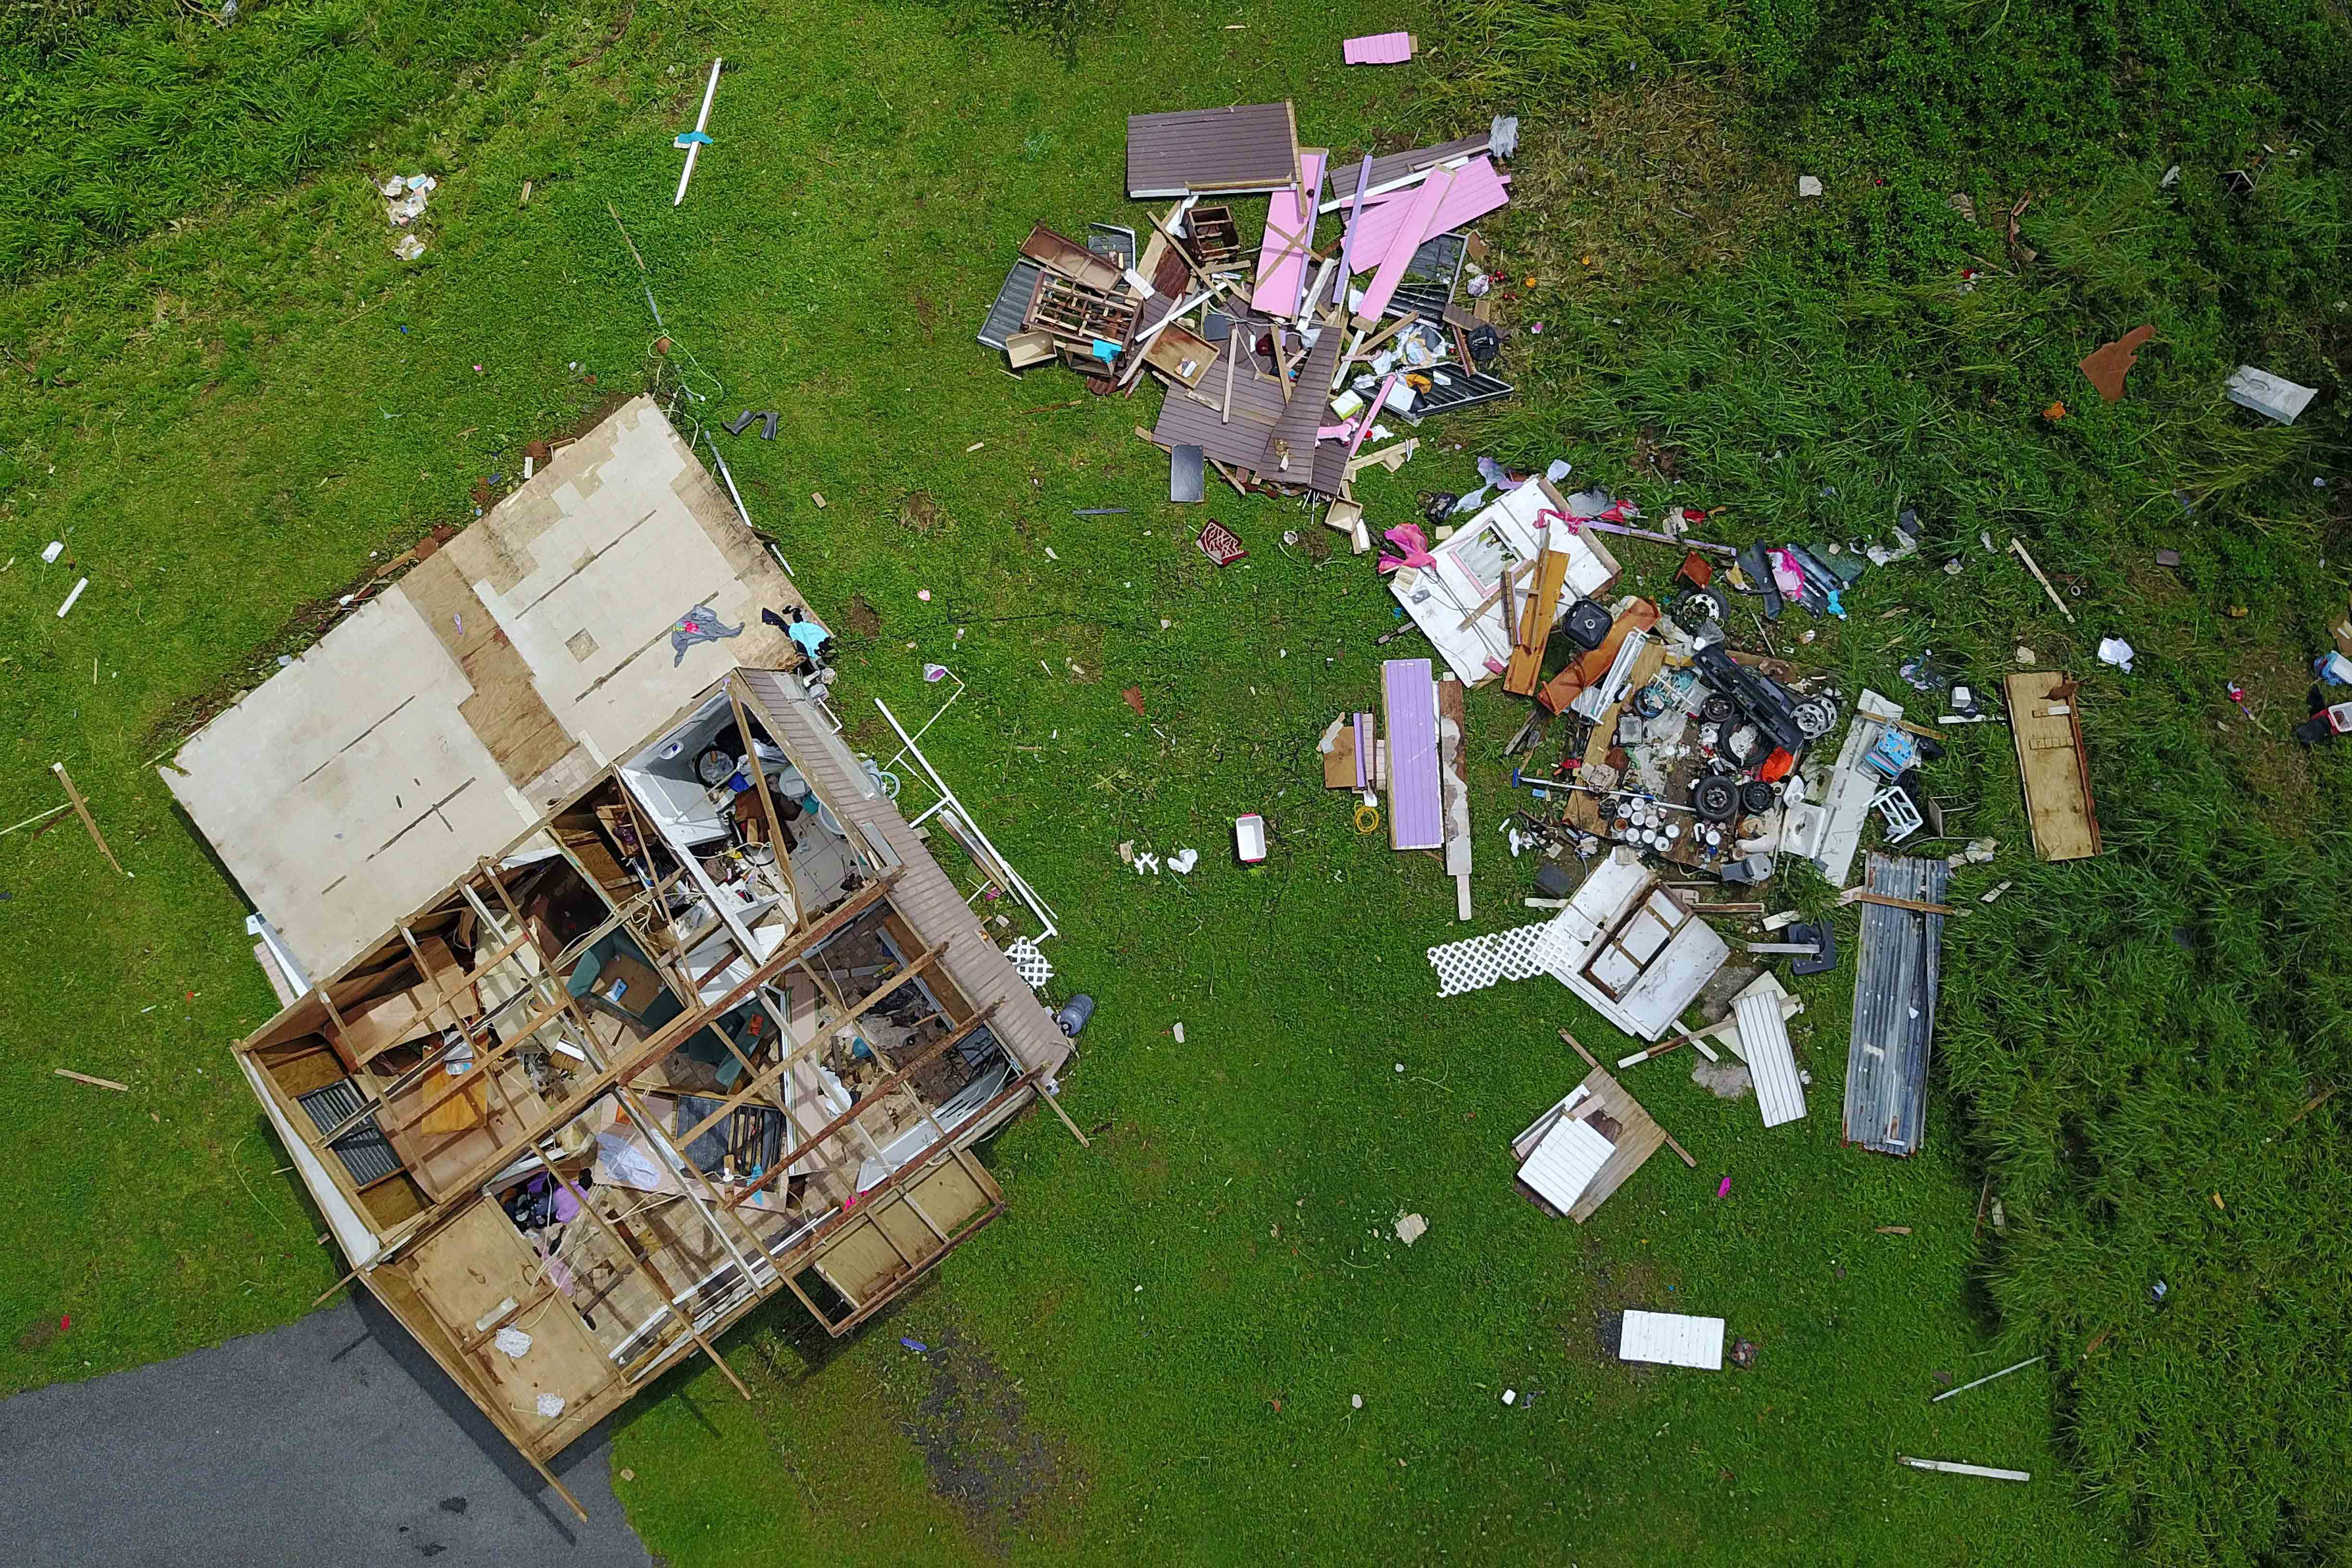 A house destroyed by hurricane winds is seen in Barranquitas, southwest of San Juan, Puerto Rico.